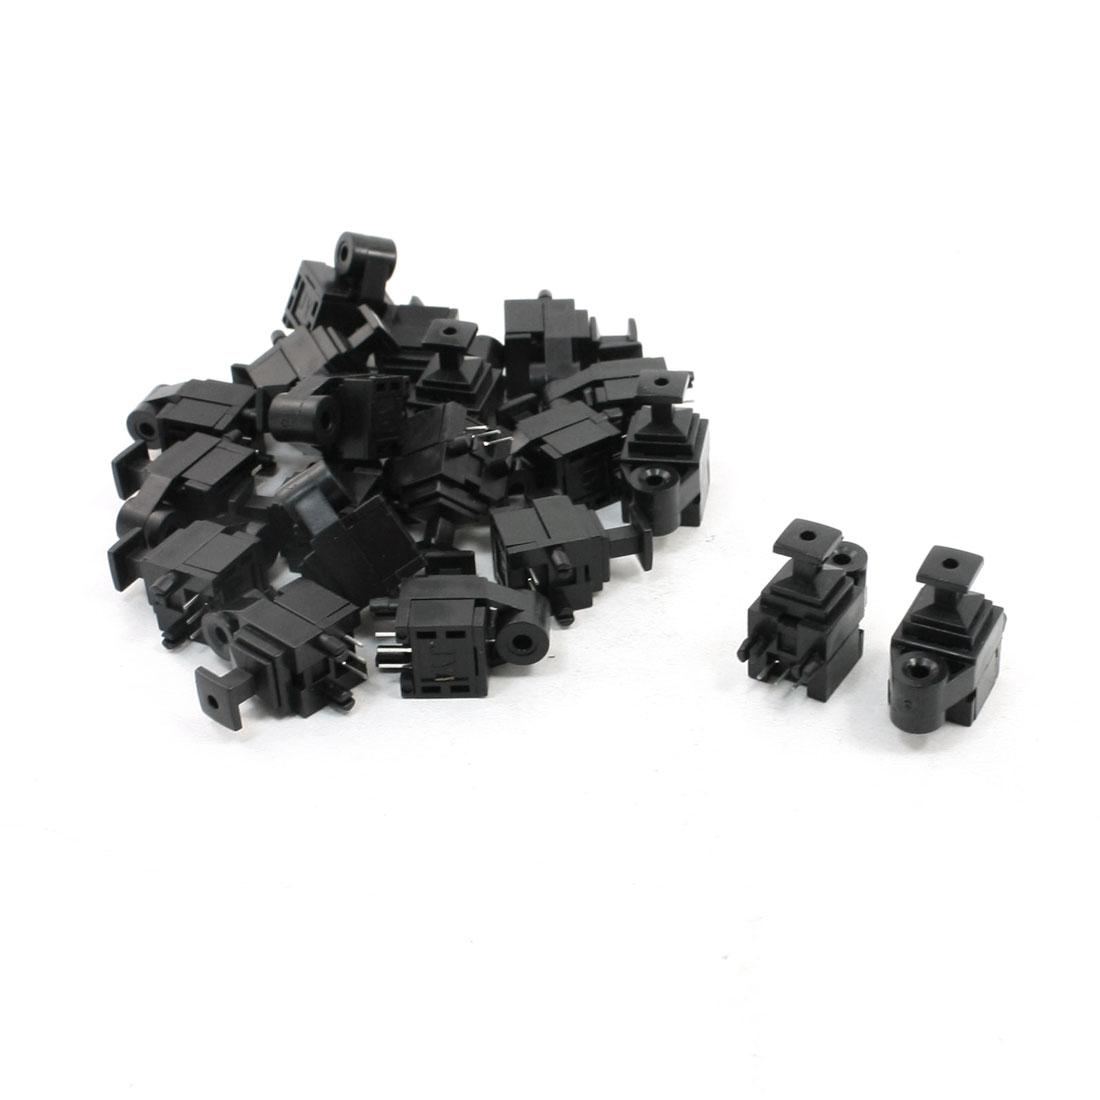 30 Pcs Audio Video Optical Fibers Jack Connector Sockets